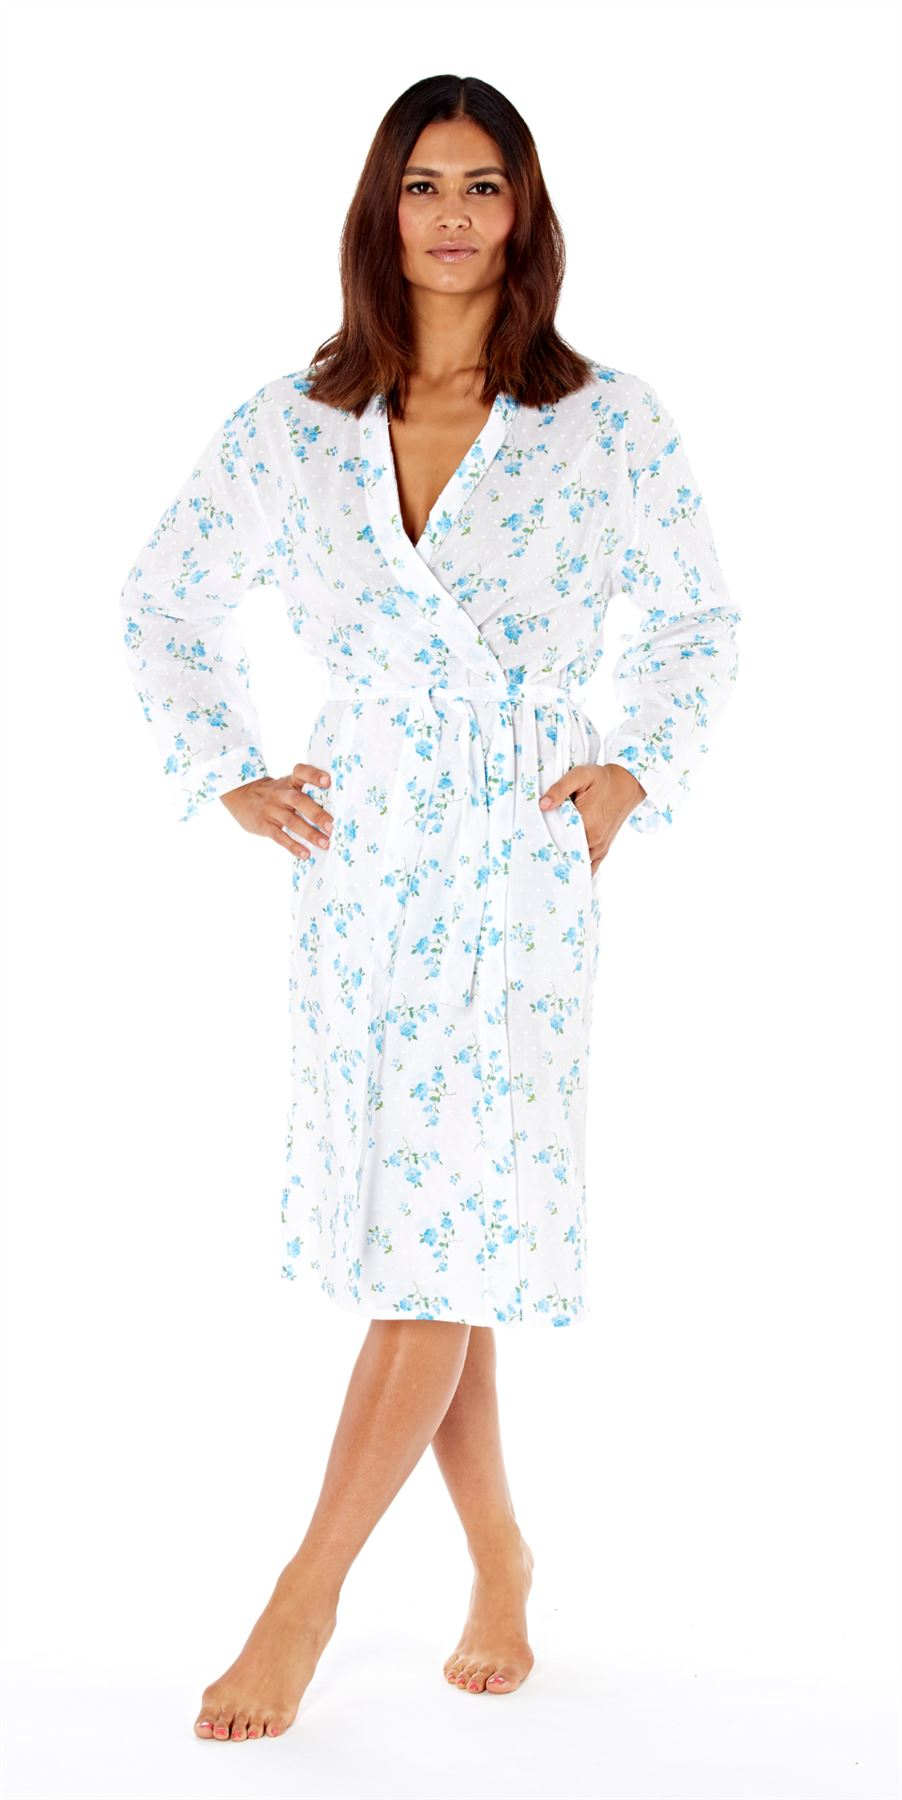 Selena Secrets Womens Robe Julia Kimono Dressing Gown Long Sleeve ...